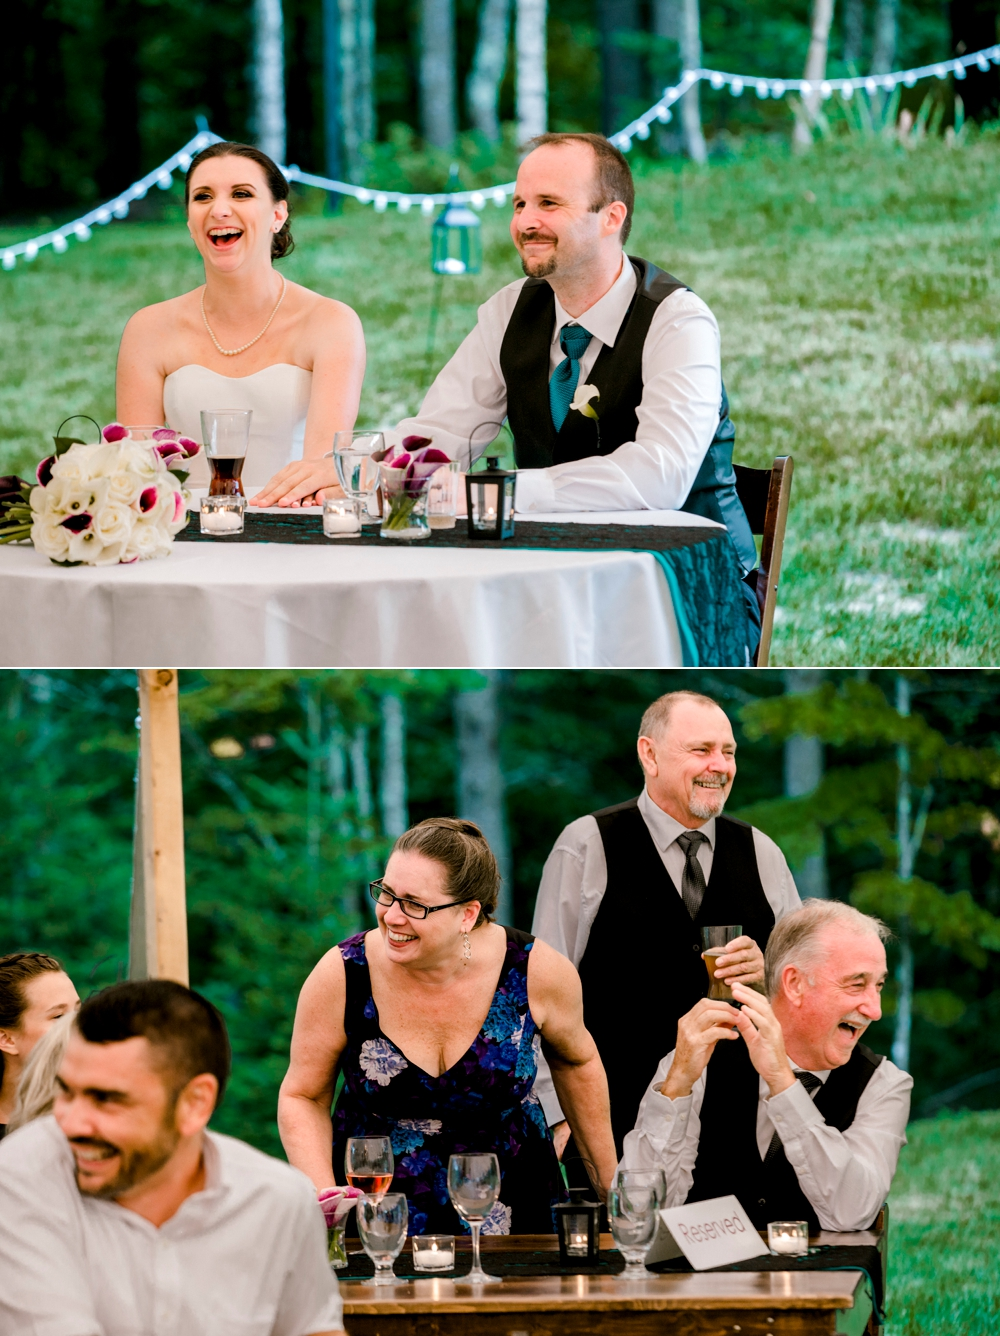 SomerbyJonesPhotography__VermontWedding_VTWedding_BackyardVermontWedding_0037.jpg